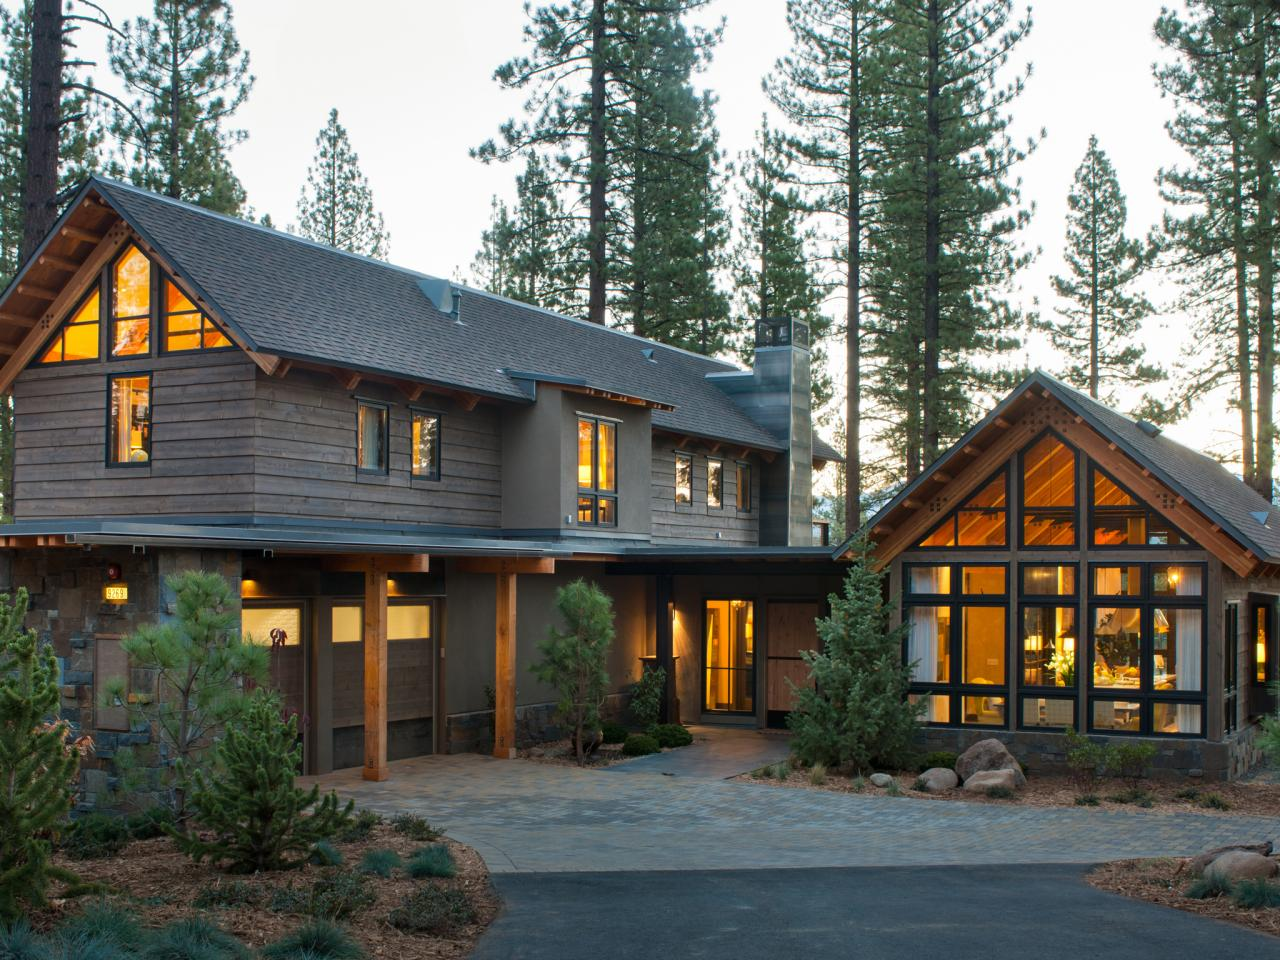 Top 5 features of modern mountain design behind the Stone and wood house plans